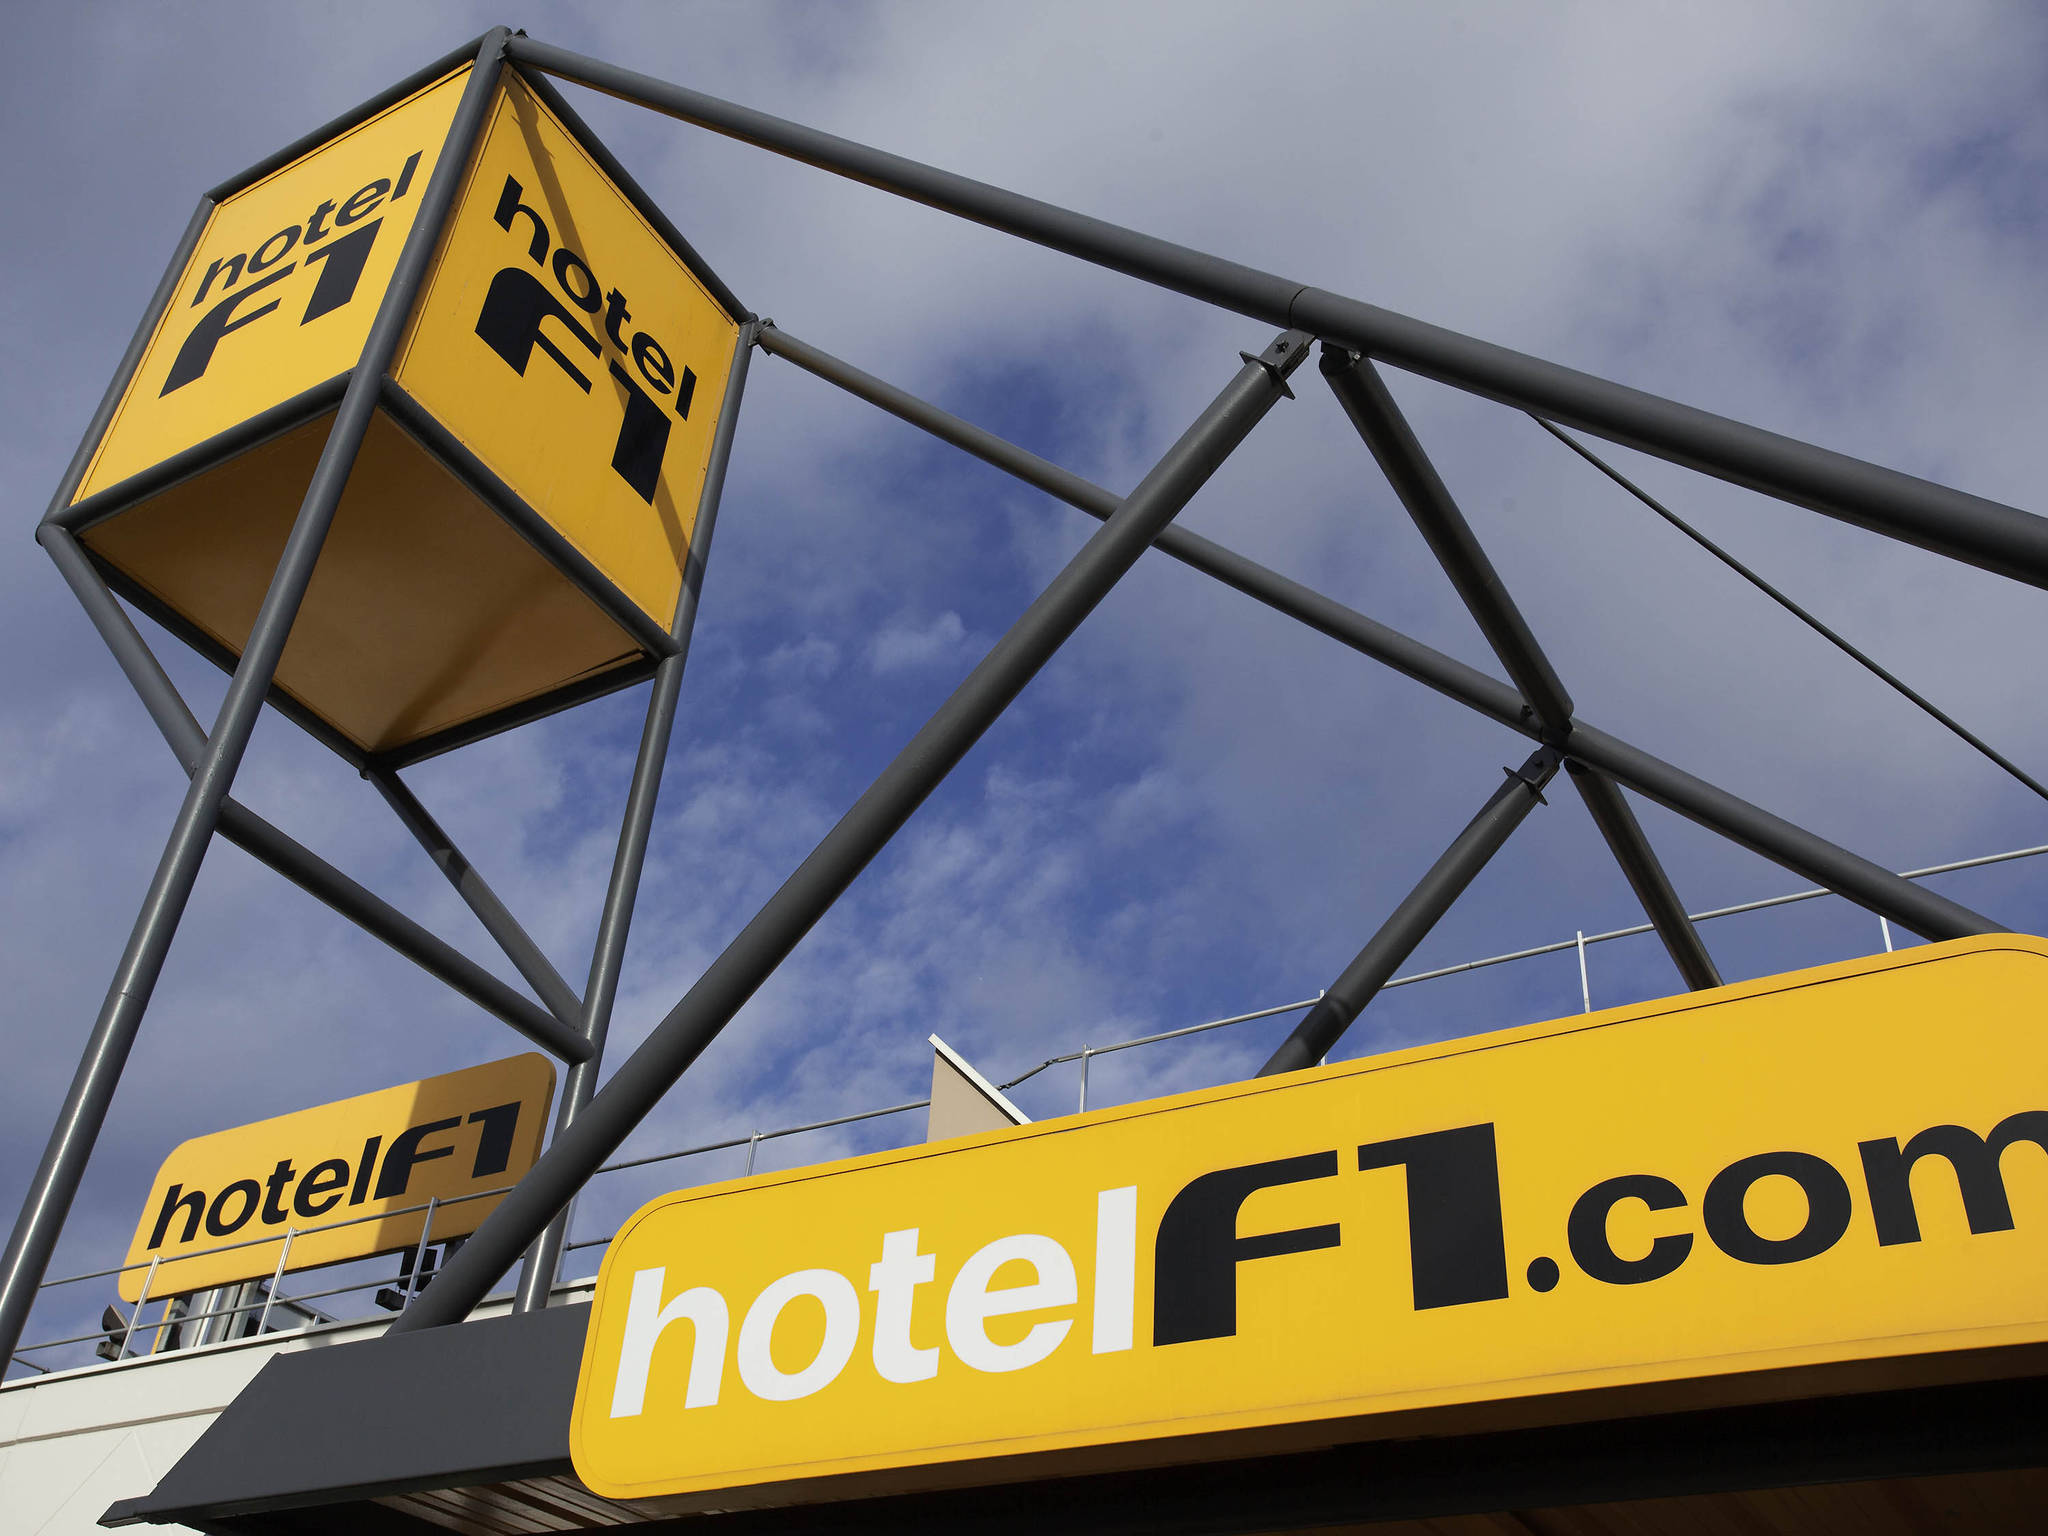 Hotel in saint pol sur mer hotelf1 dunkerque centre for Reservation formule 1